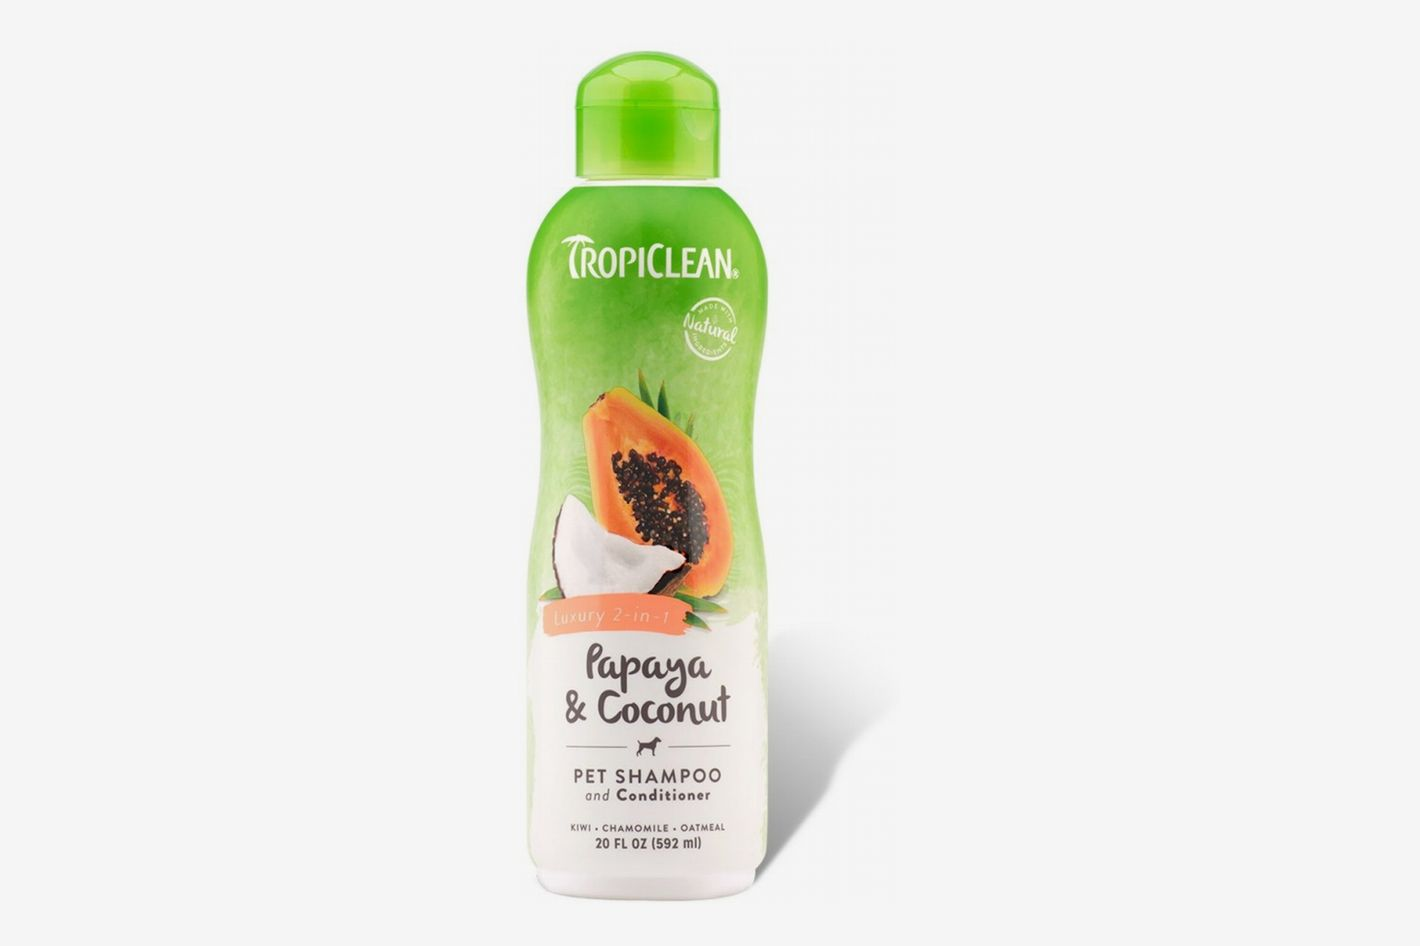 TropiClean Luxury 2-in-1 Papaya & Coconut Pet Shampoo and Conditioner